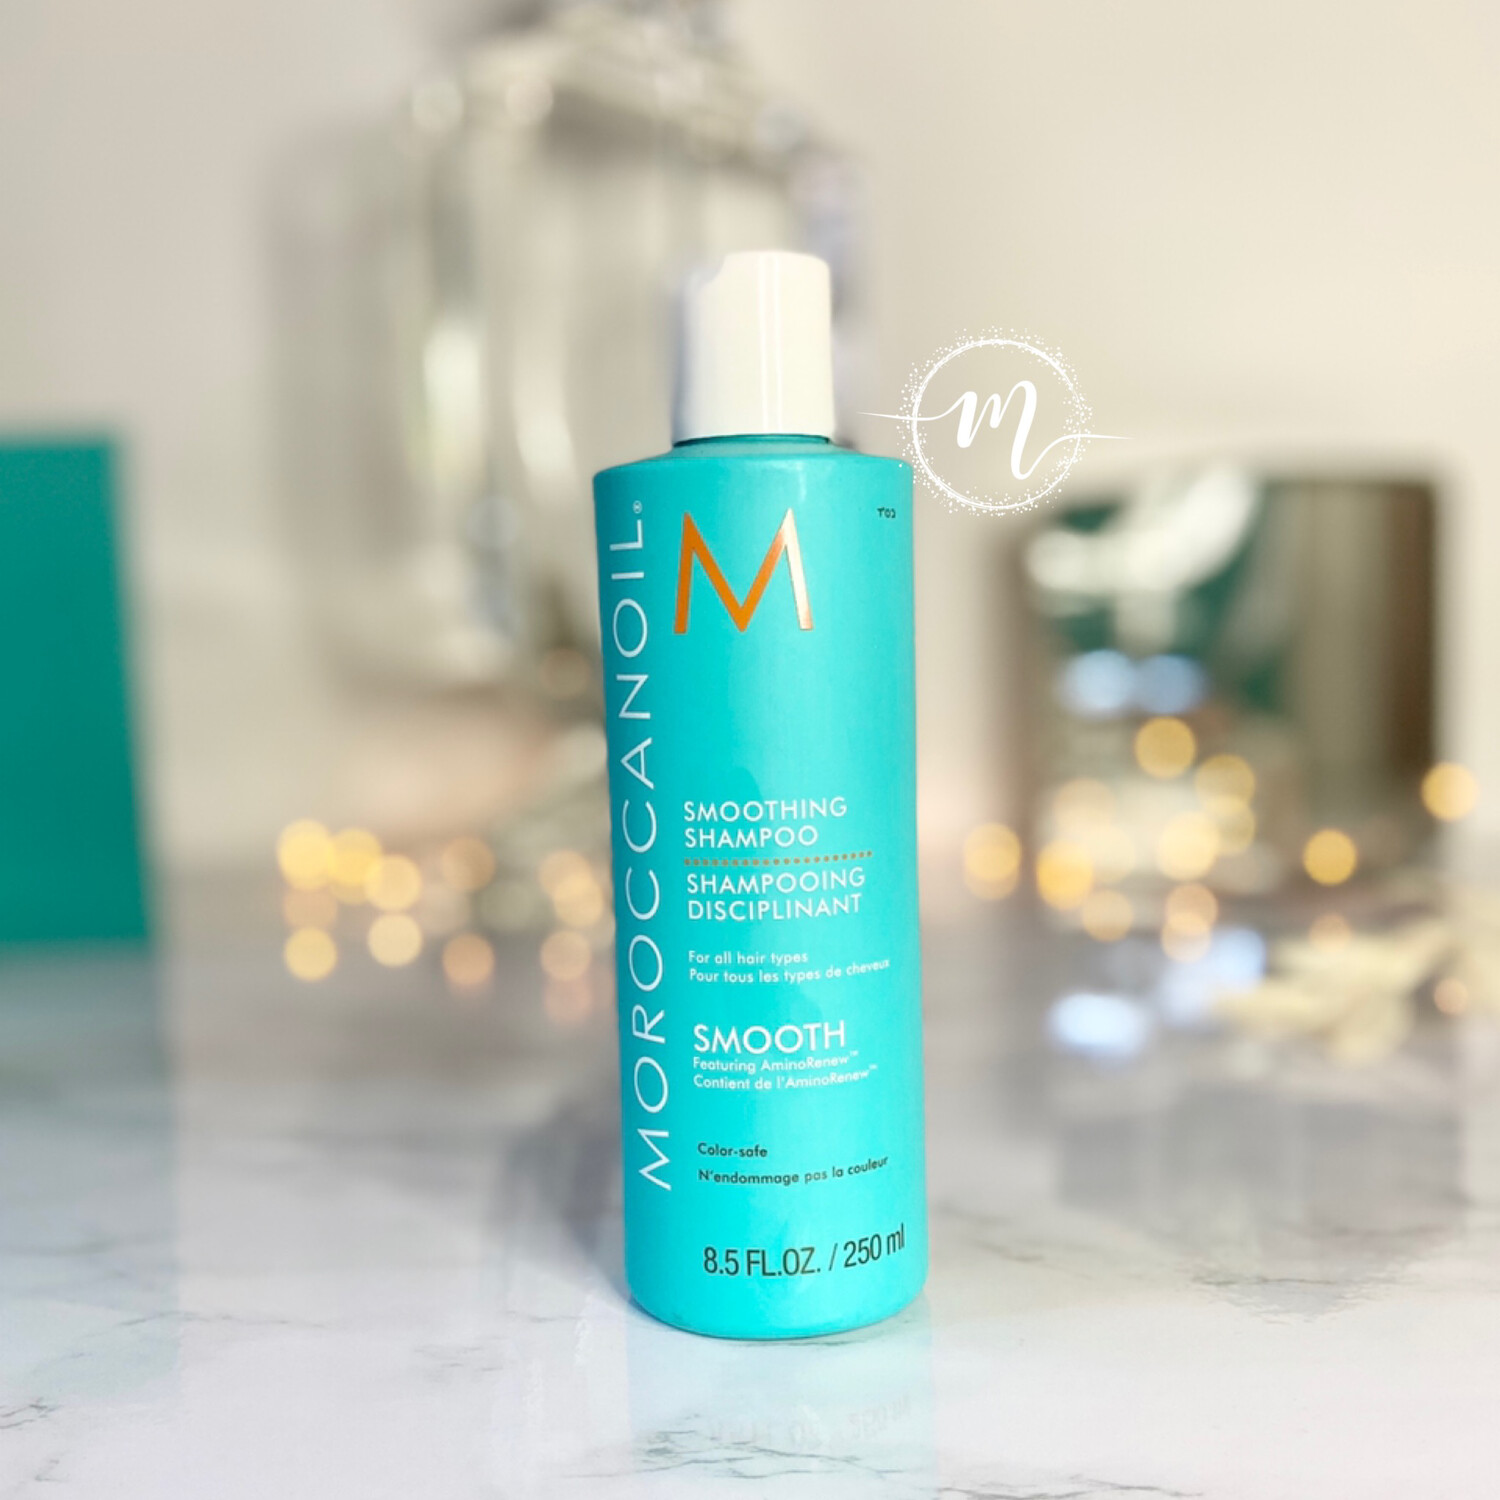 Shampooing Smooth Moroccanoil 250ml